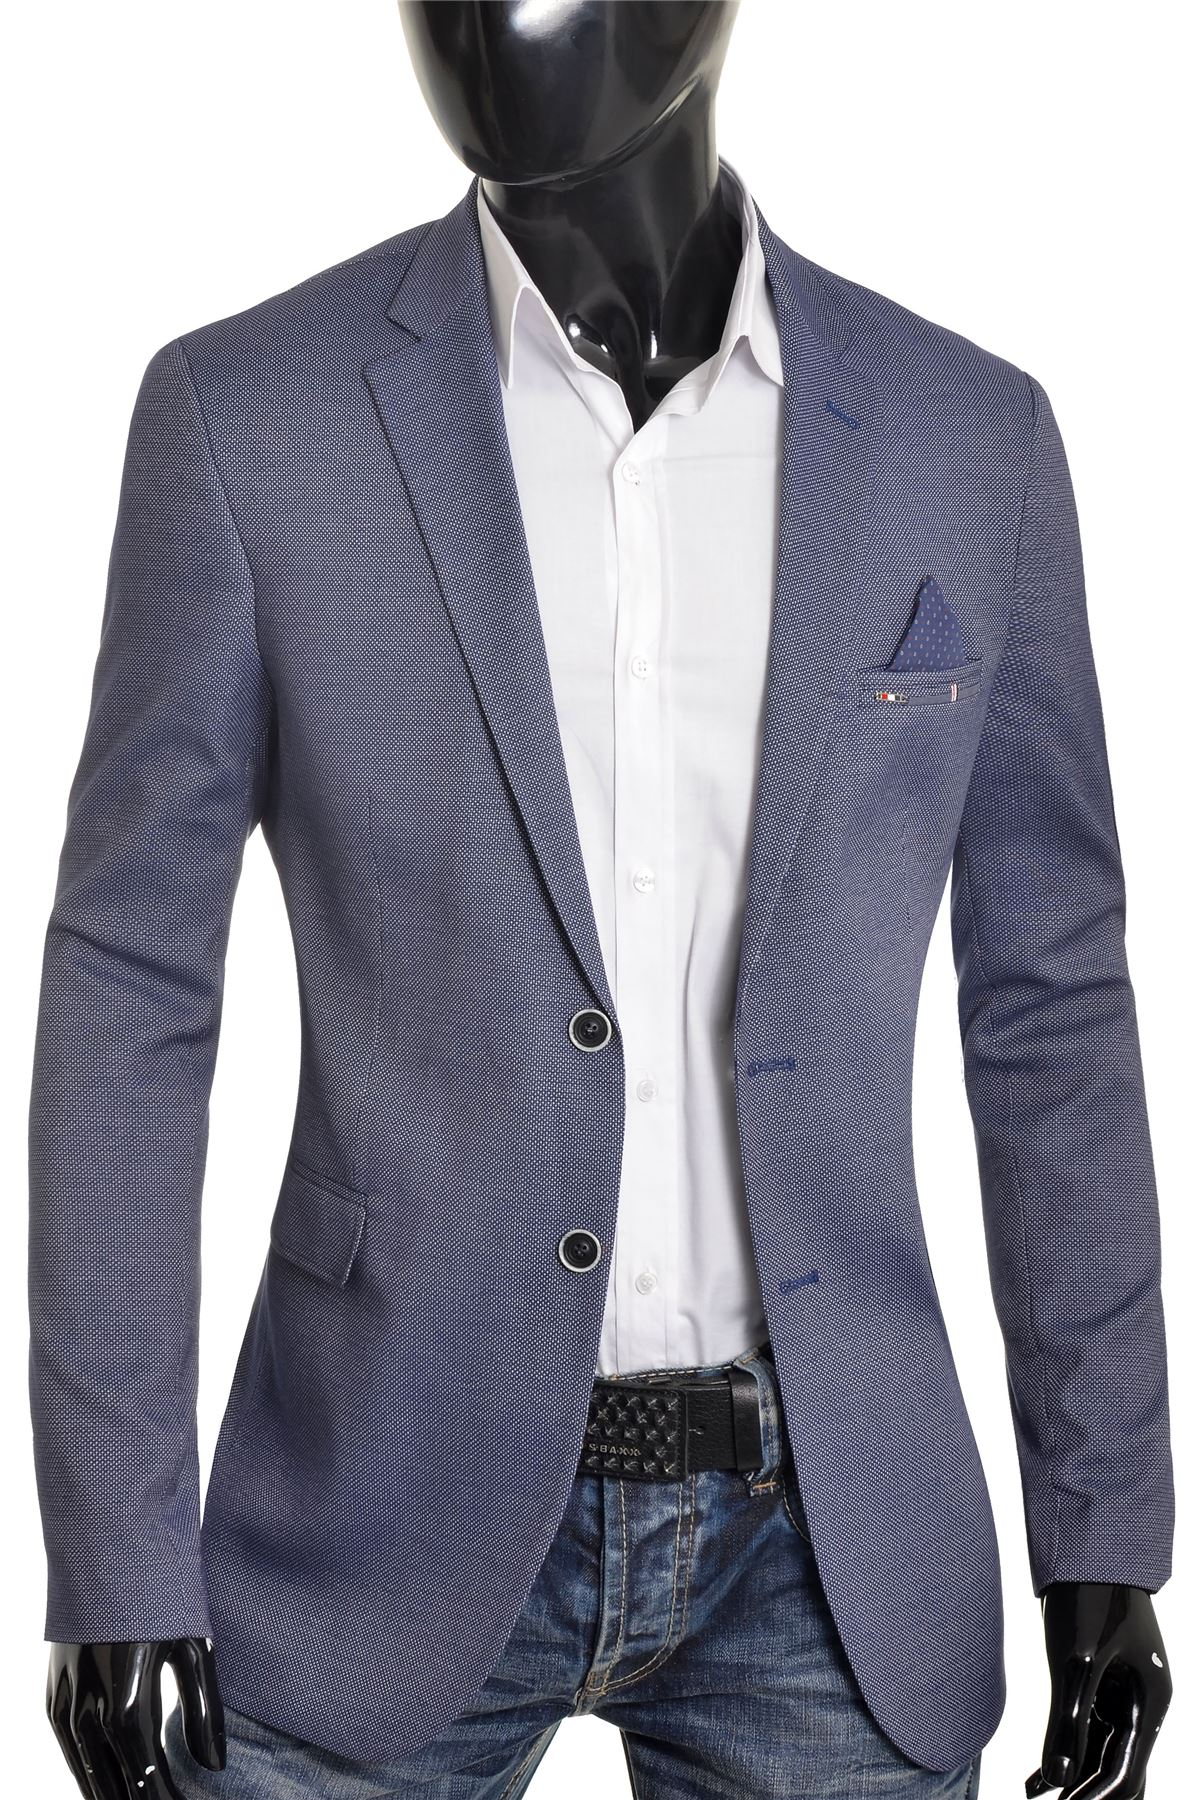 Men-039-s-Classic-Design-Blazer-Jacket-Blue-Casual-Contrast-Finish-Slim-Soft-Cotton thumbnail 3